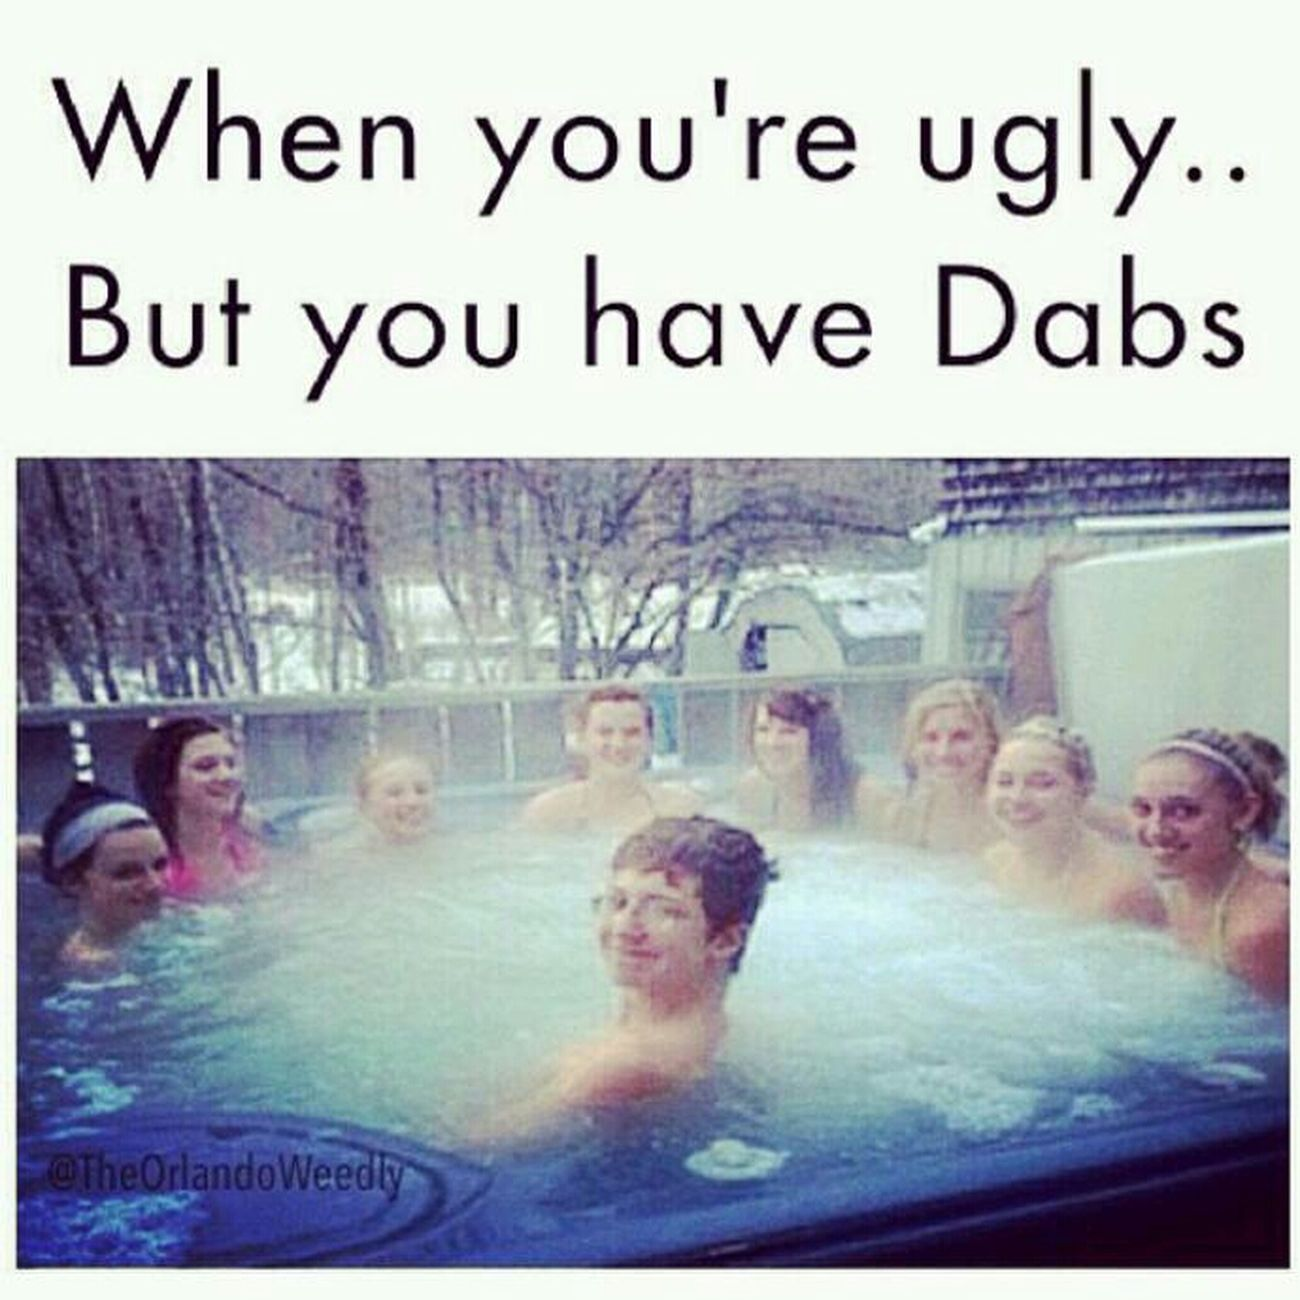 Check This Out Enjoying Life @dabs